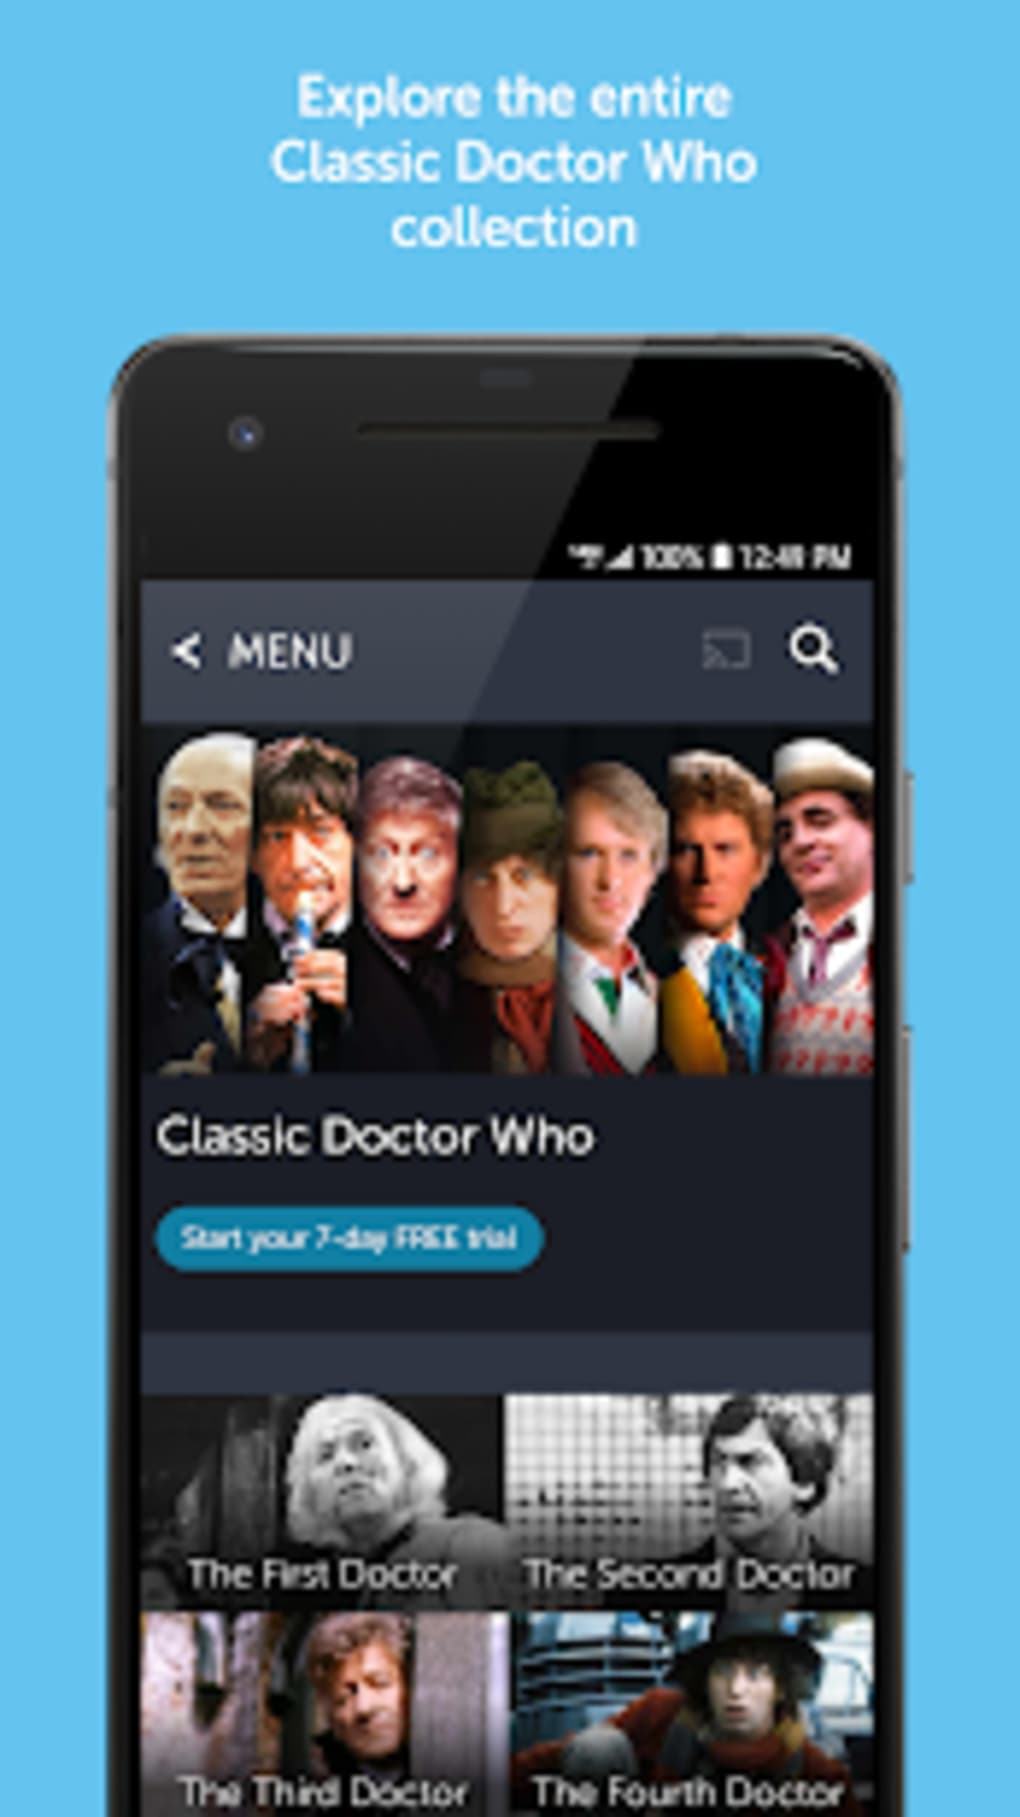 Britbox By Bbc Itv Great British Tv Apk For Android Download